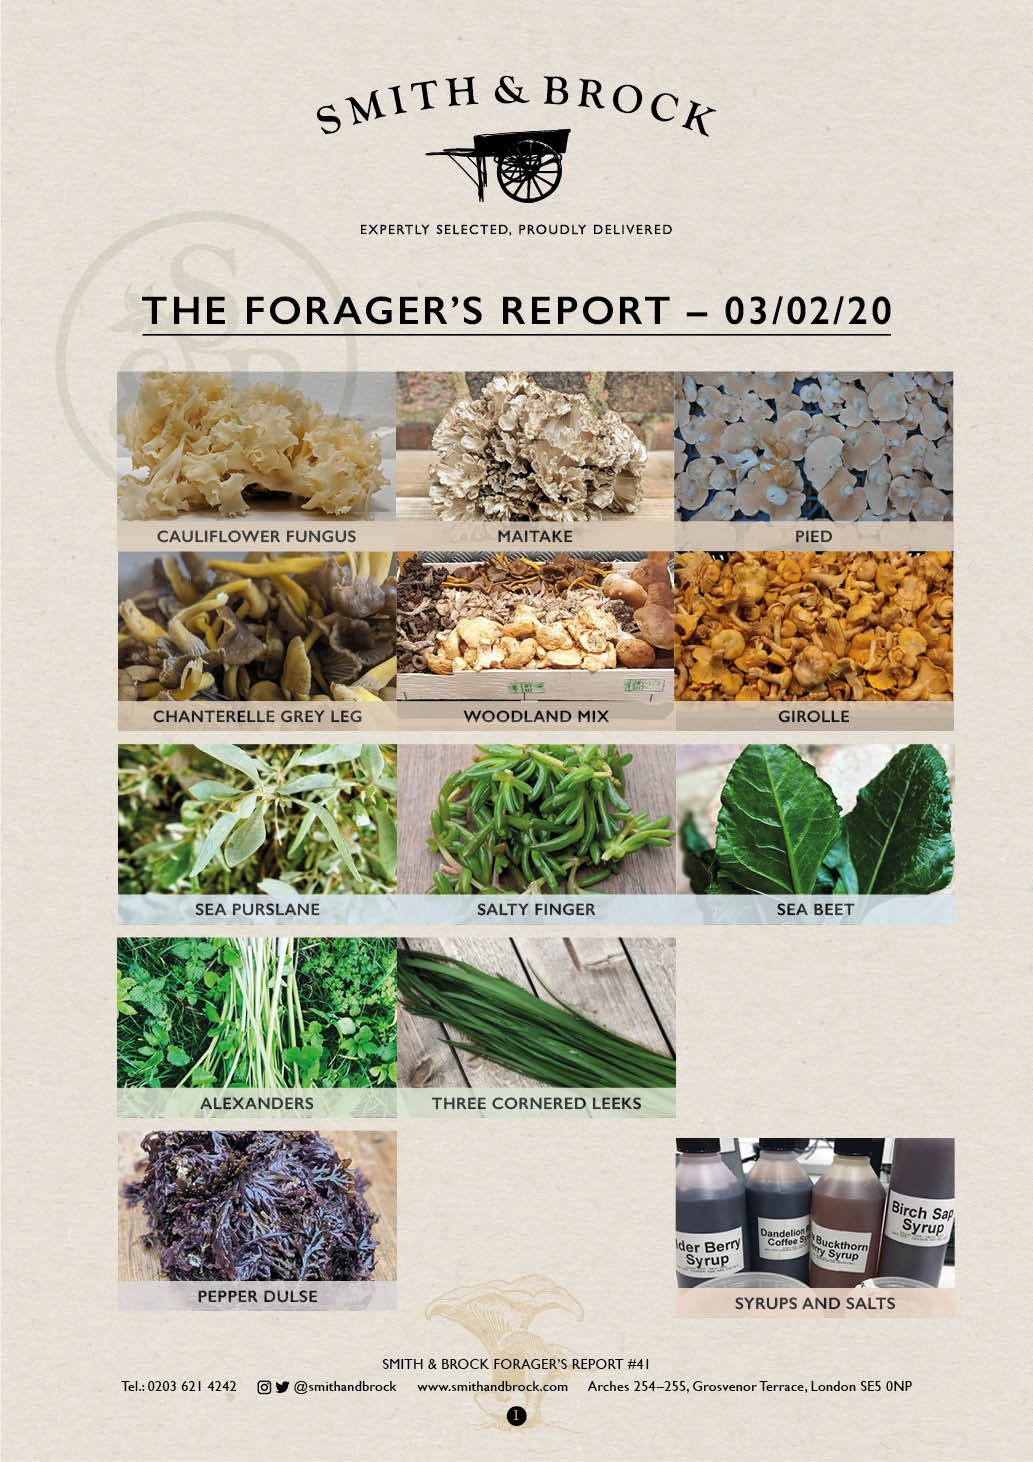 Smith&Brock Foraged Products Report 03 Feb 2020 41